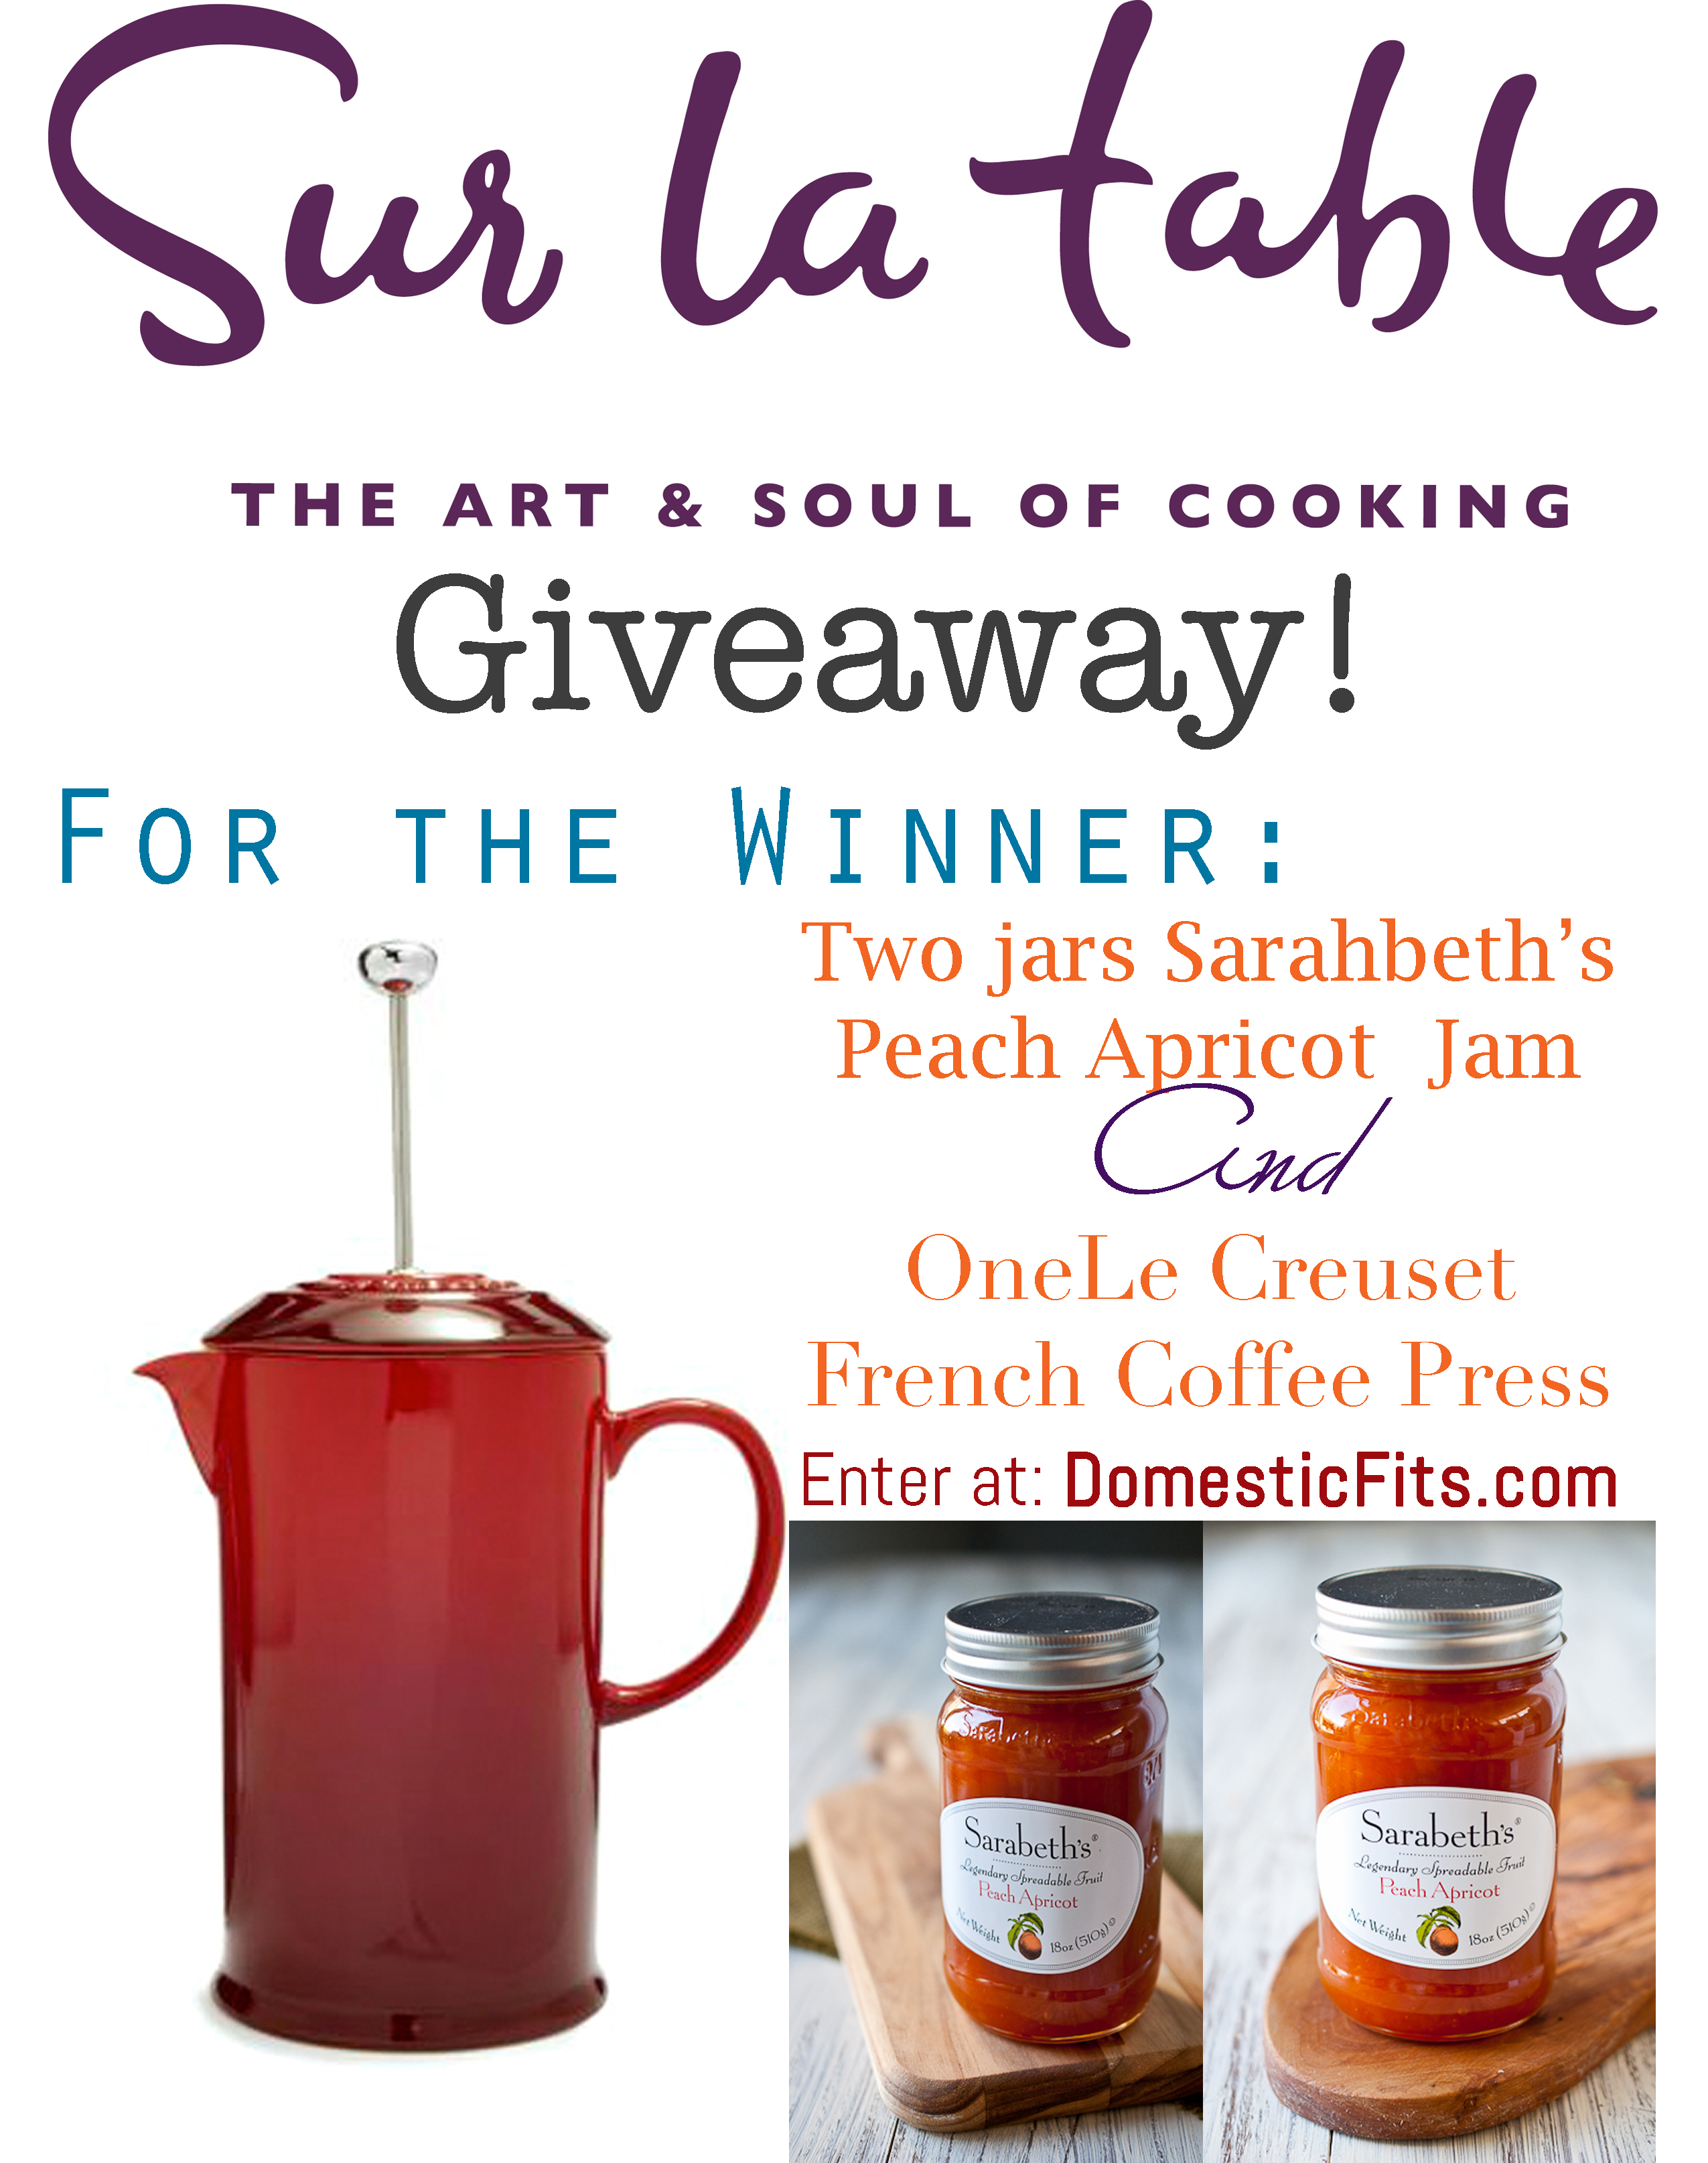 Sur La Table giveaway